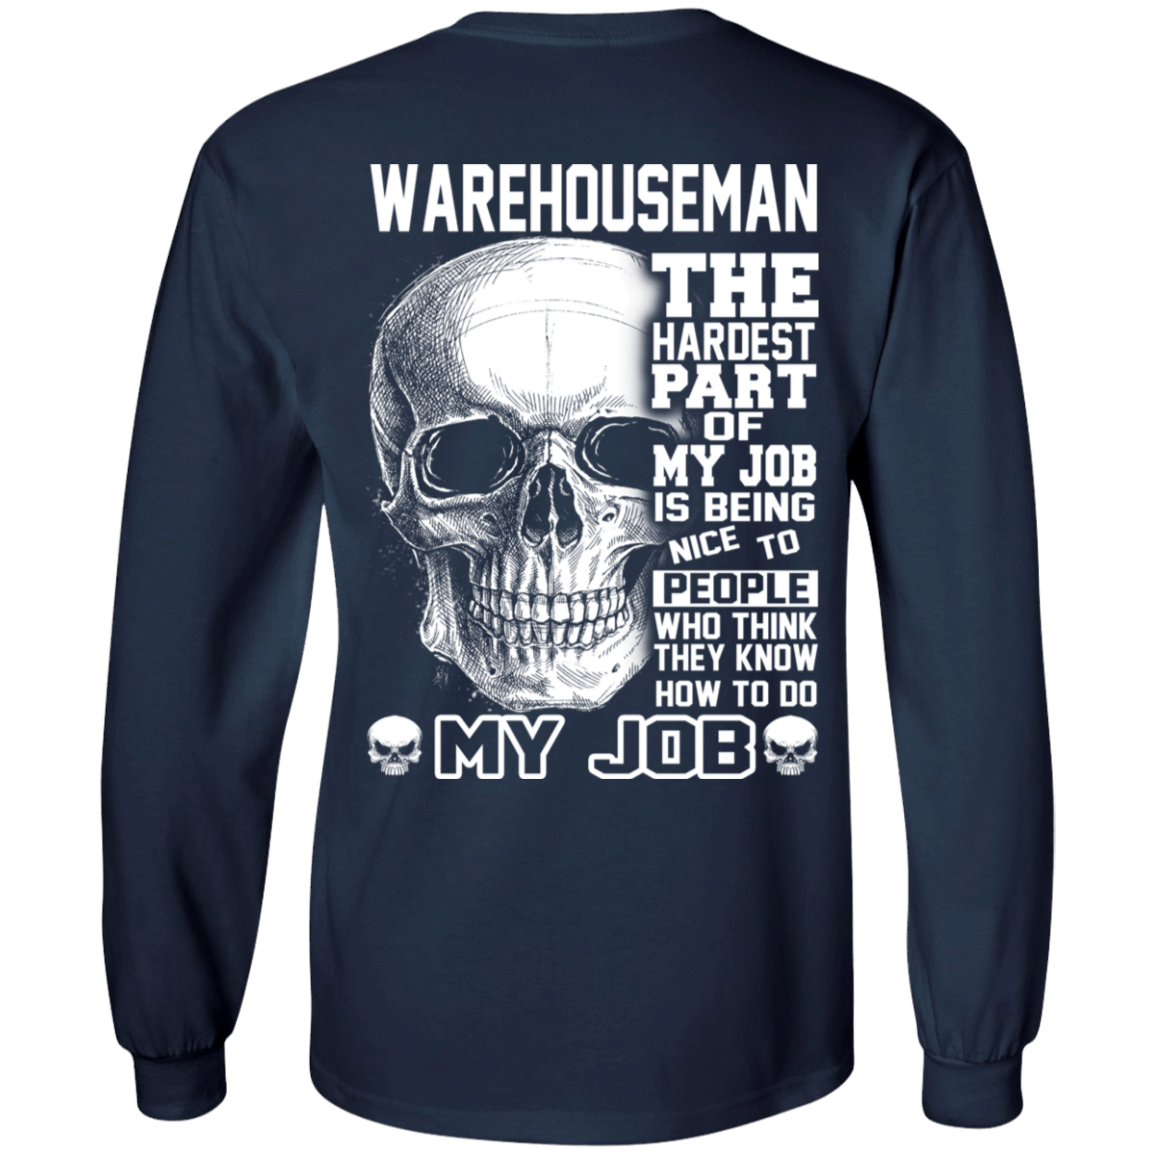 Warehouseman The Hardest Part Of My Job 30-184-71609196-331 - Tee Ript